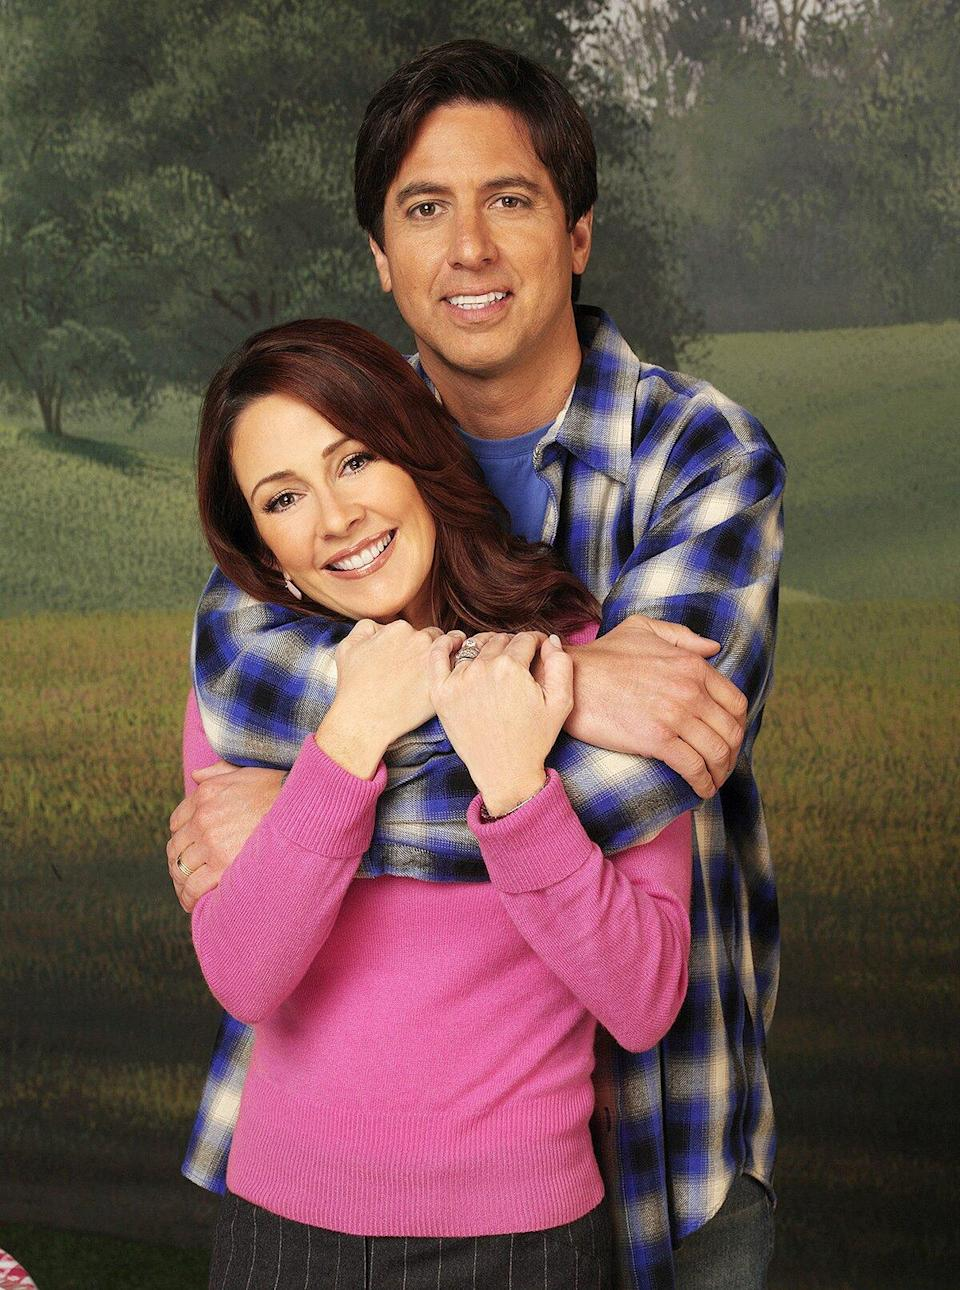 Ray Romano and Patricia Heaton star in the series finale of EVERYBODY LOVES RAYMOND, Monday, May 16